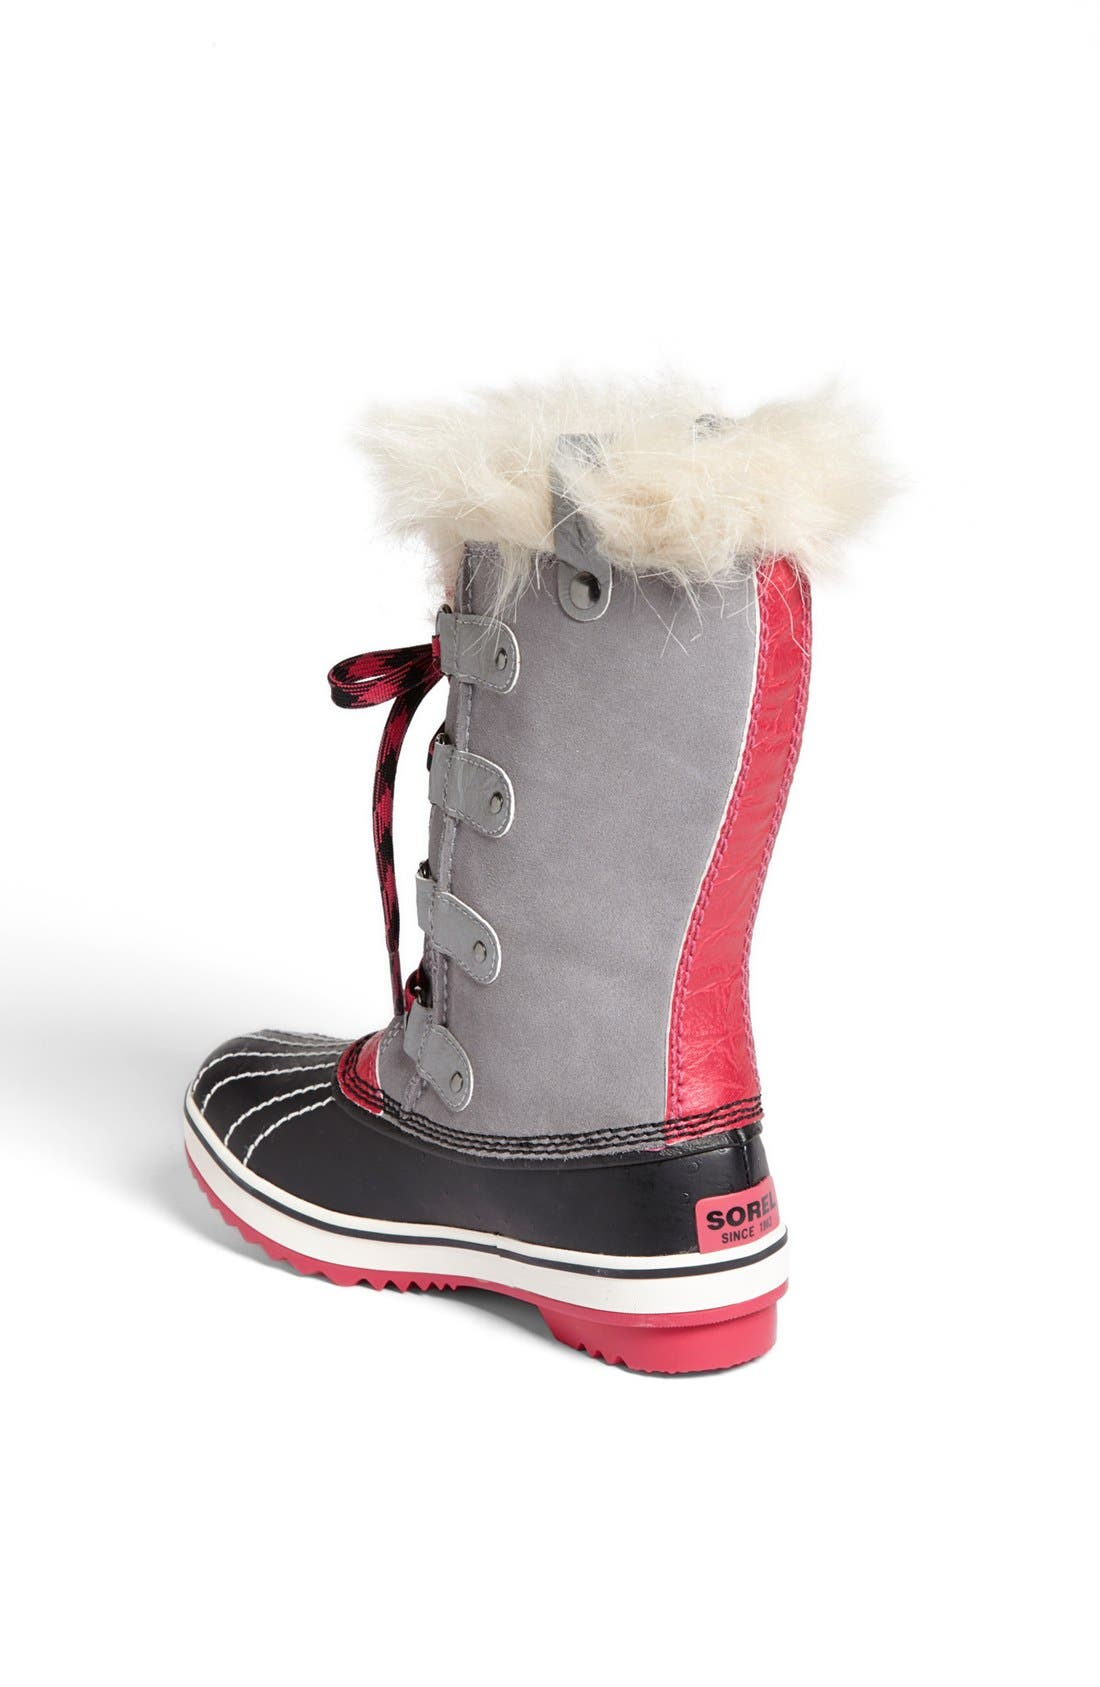 Alternate Image 2  - SOREL 'Tofino' Waterproof Snow Boot (Little Kid & Big Kid)